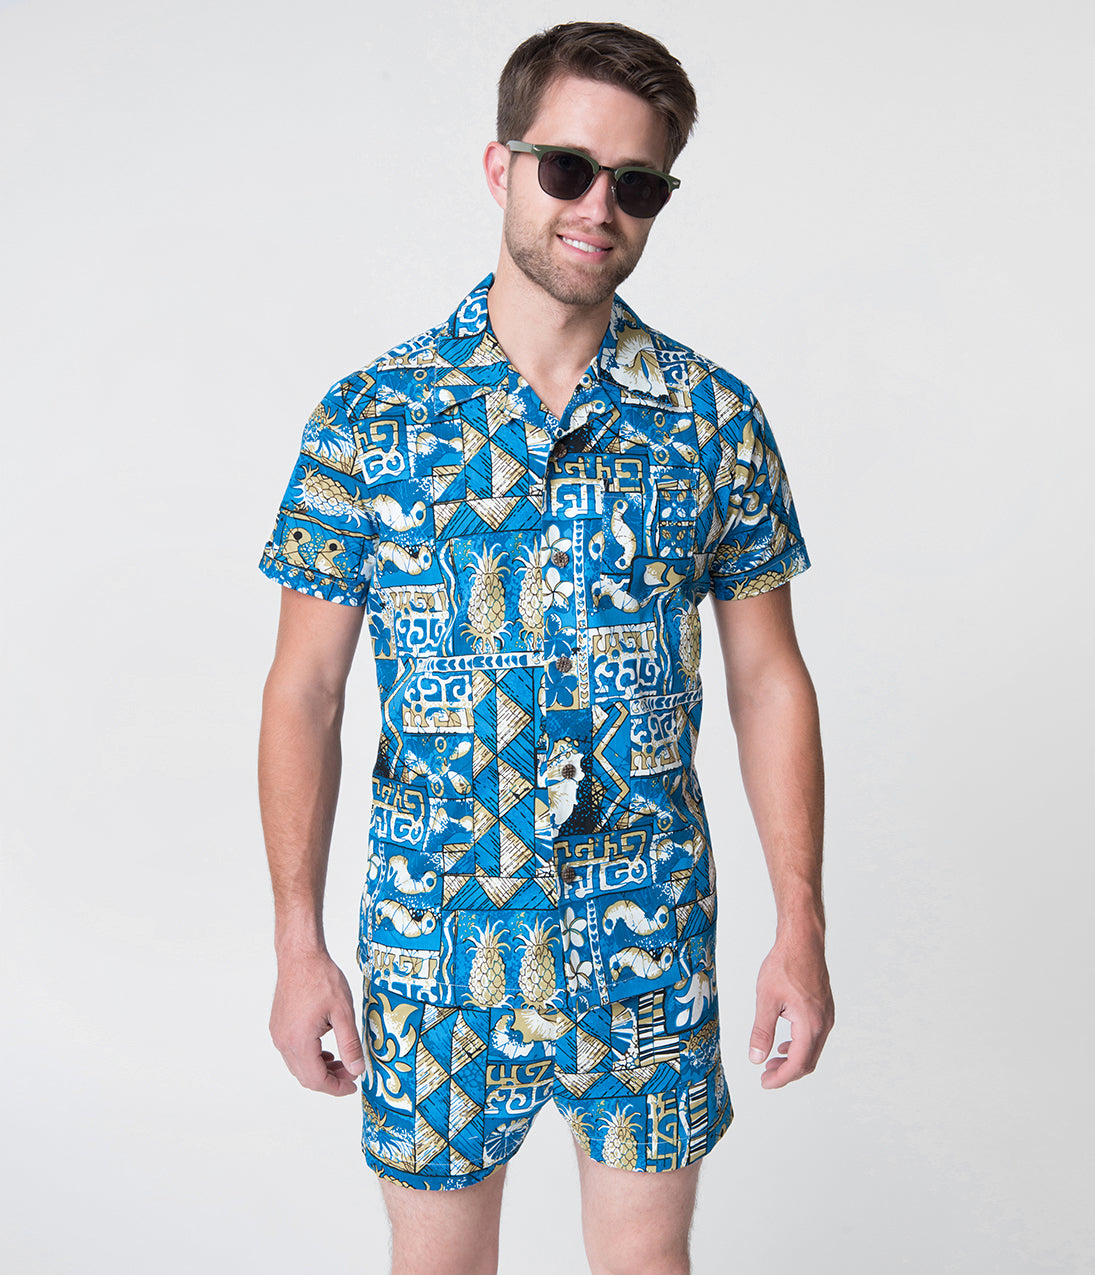 Vintage Shirts – Mens – Retro Shirts Alfred Shaheen Blue Tapa Tapestry Print Mens Hawaiian Cabana Set Shorts $66.00 AT vintagedancer.com